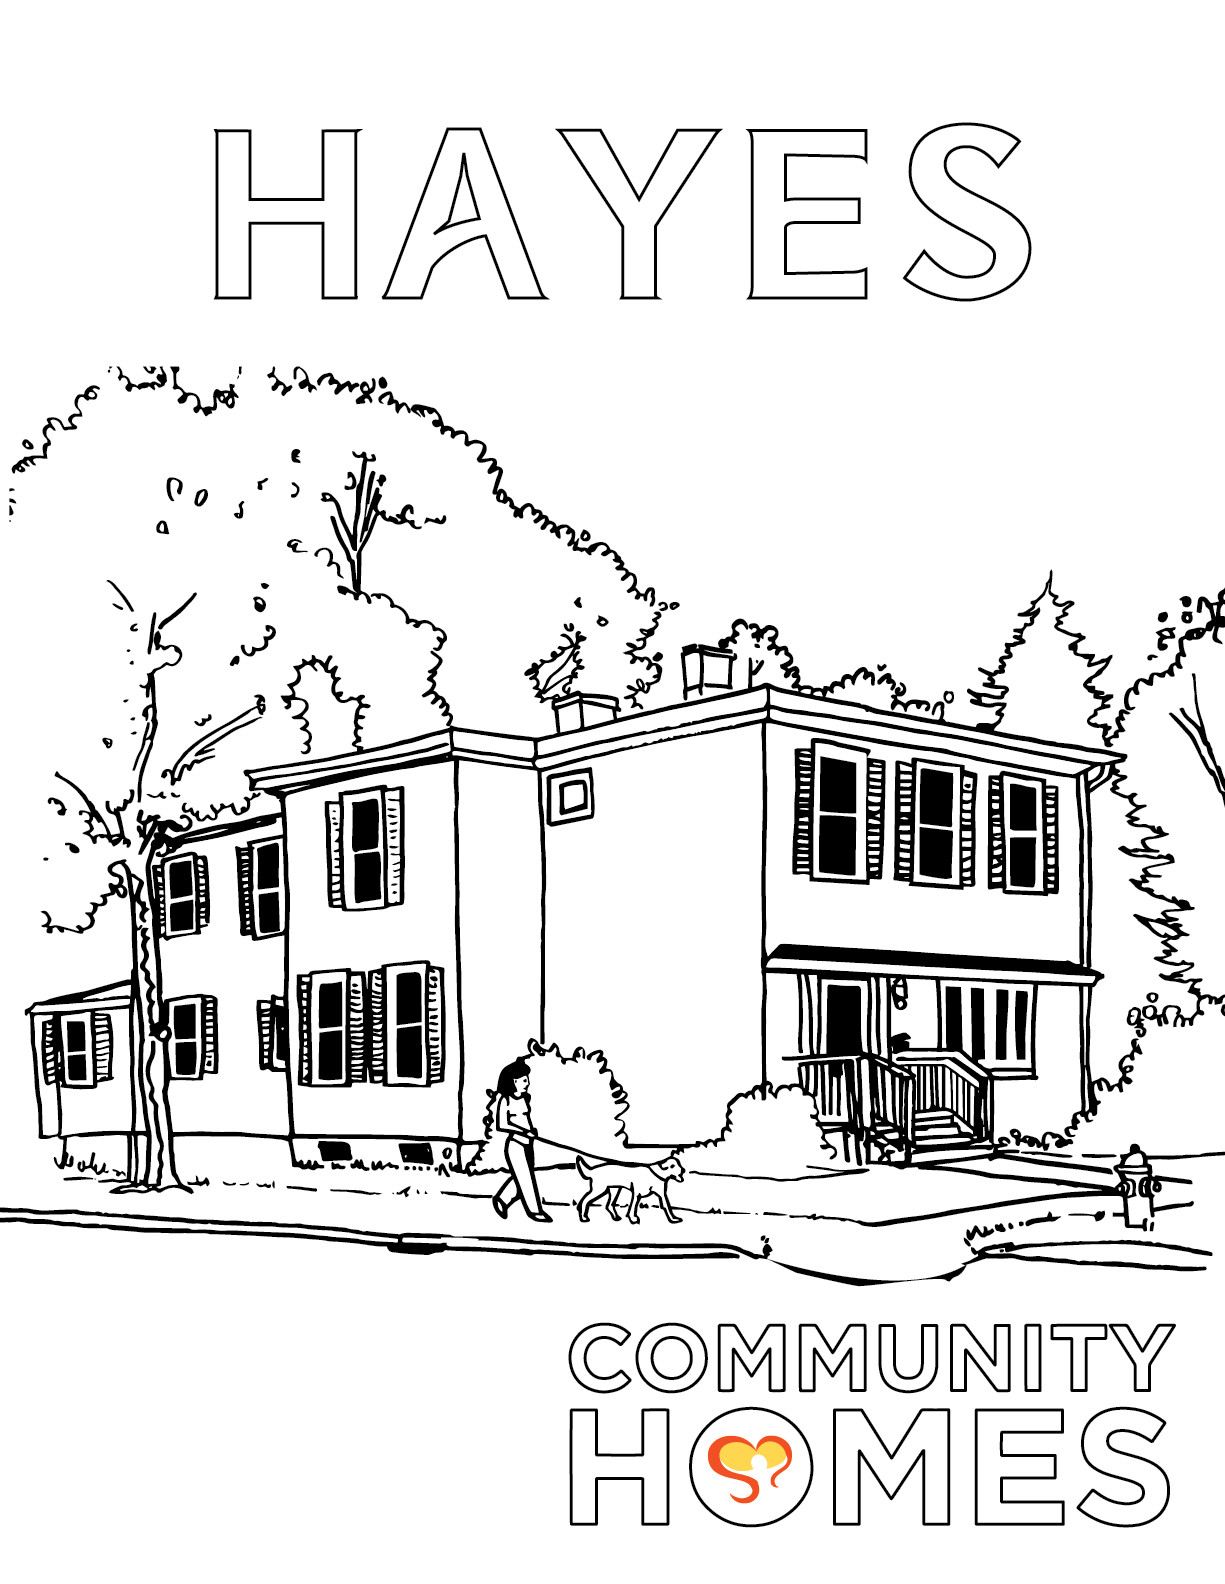 Hayes 2x png hz1A5kae - Grandview and Hayes - Fun Art Friday